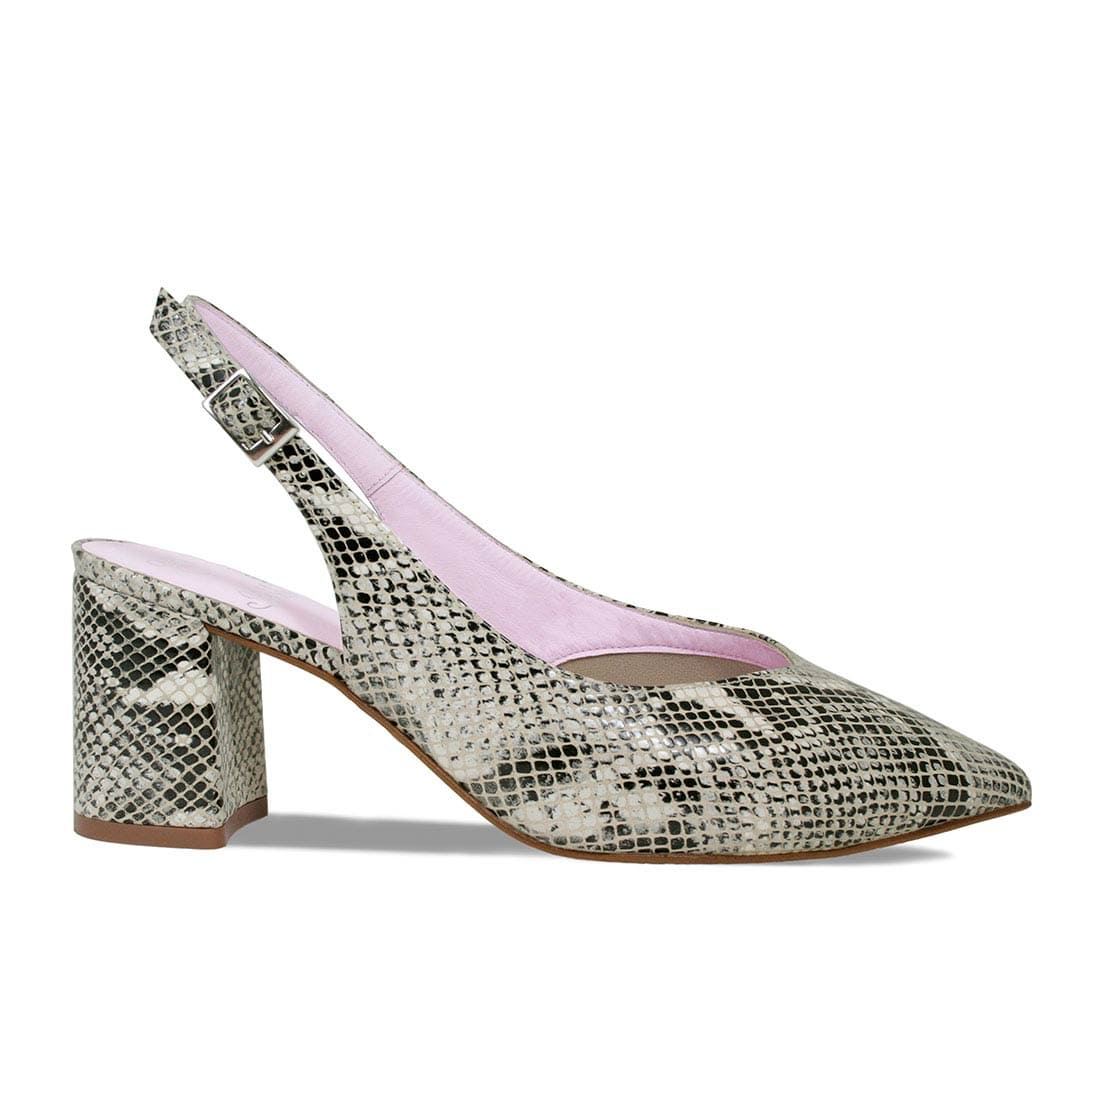 Gray Snake Print Block Heel Sling-Back Pumps